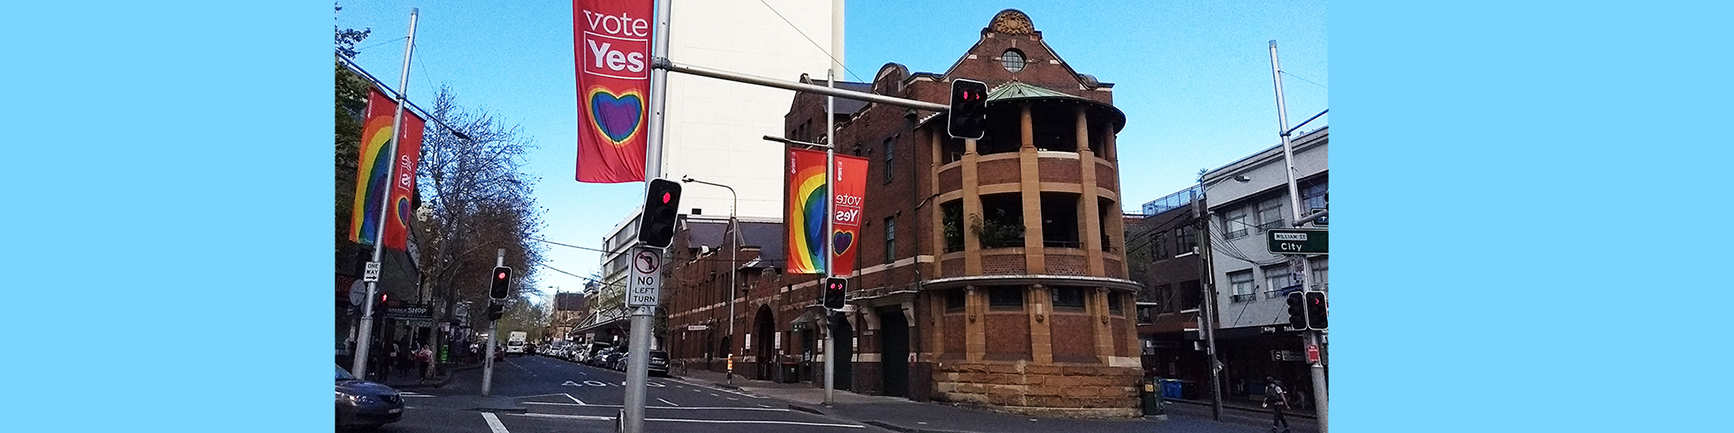 Exterior of the Kirketon Road Centre showing heritage architecture and rainbow street flags in support of the 'Yes' campaign for marriage equality.